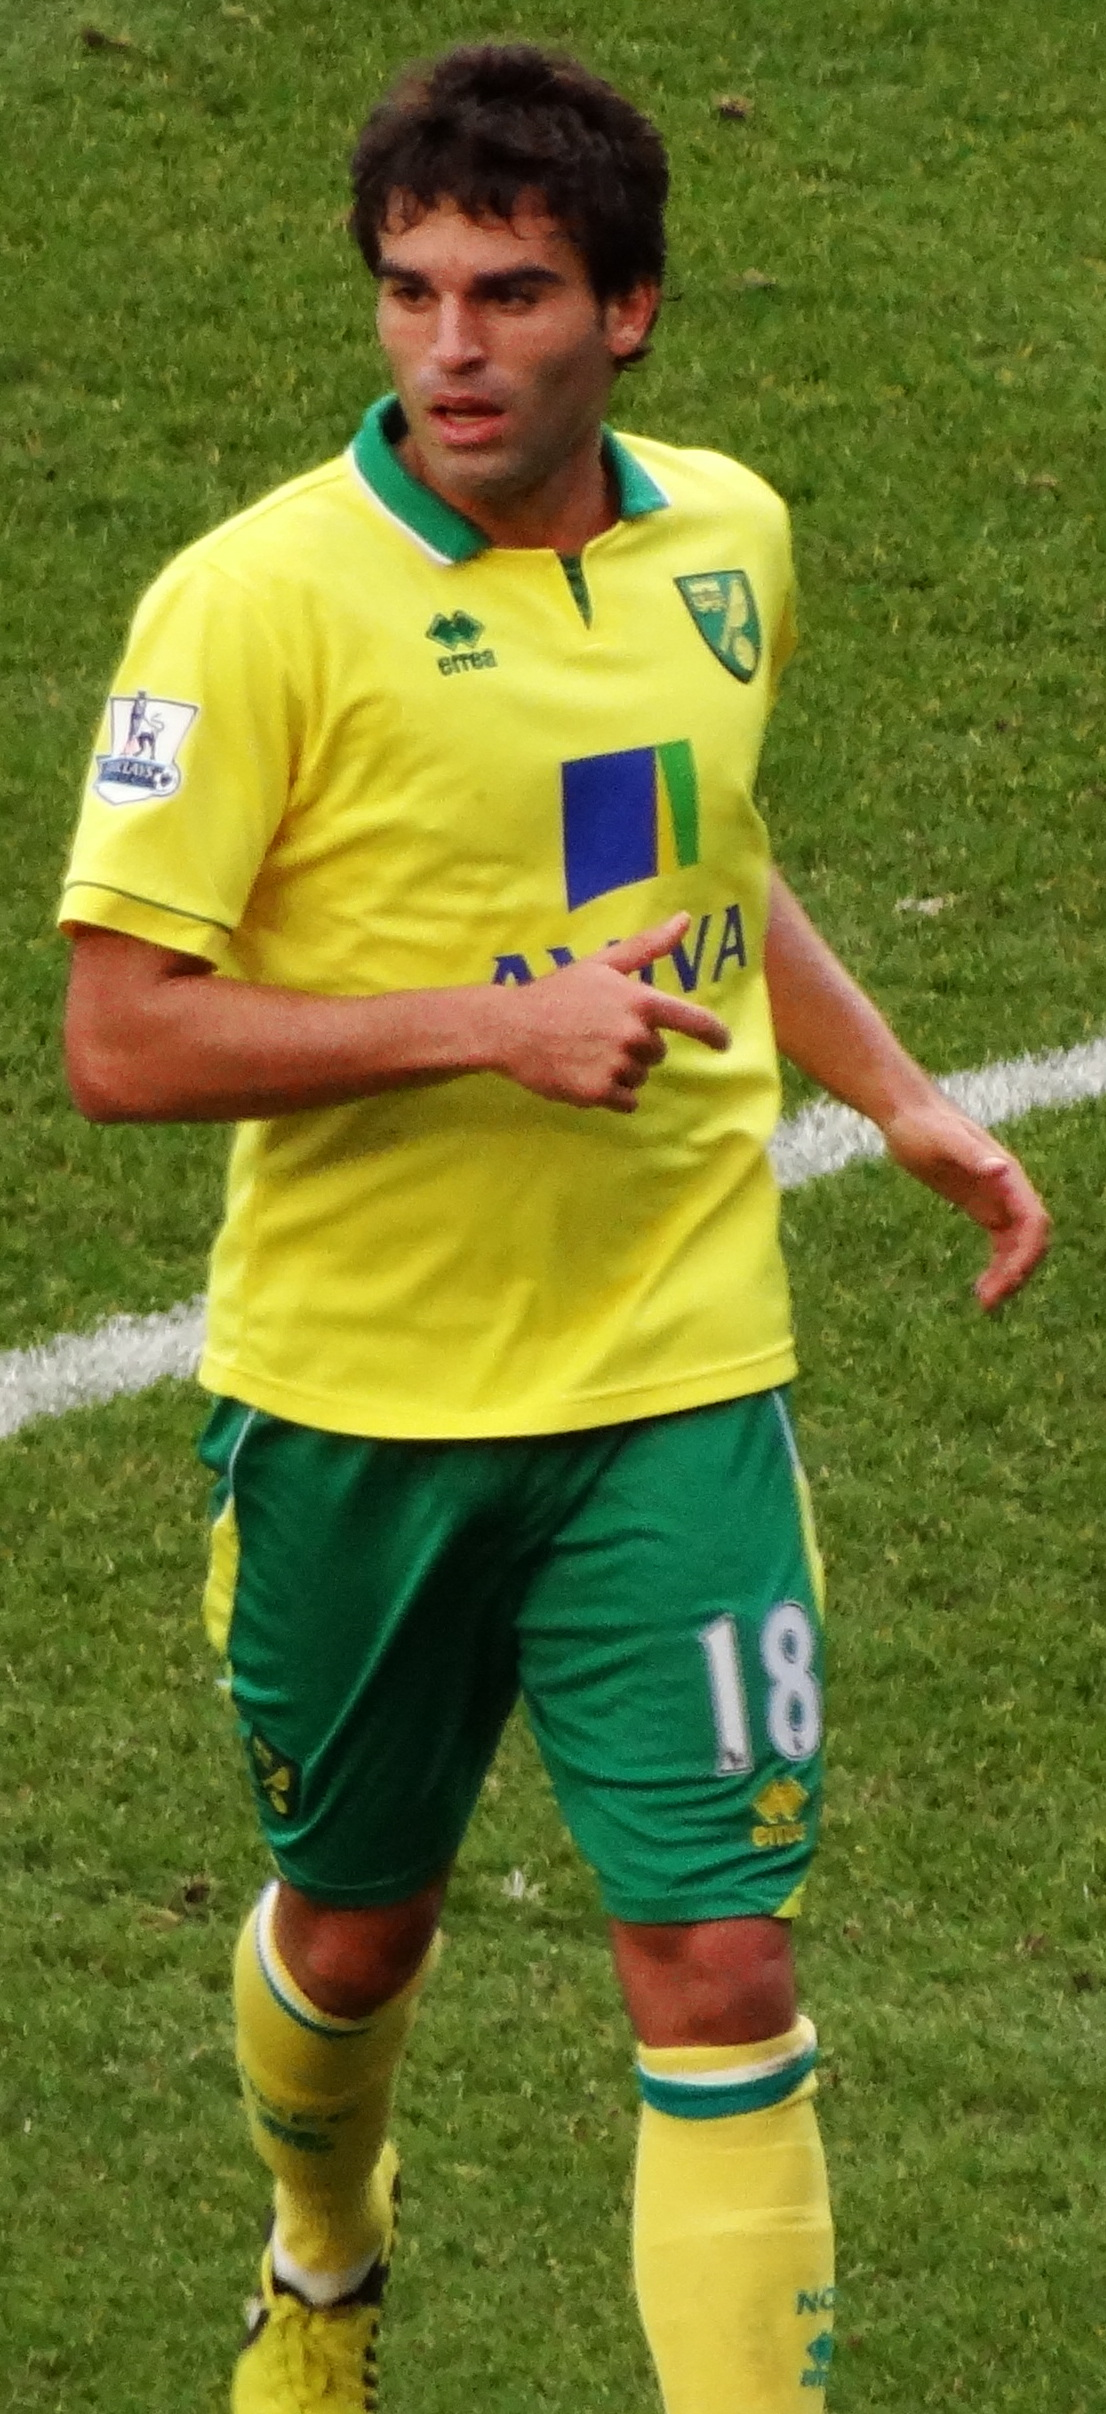 Garrido playing for [[Norwich City F.C.|Norwich City]] in 2012